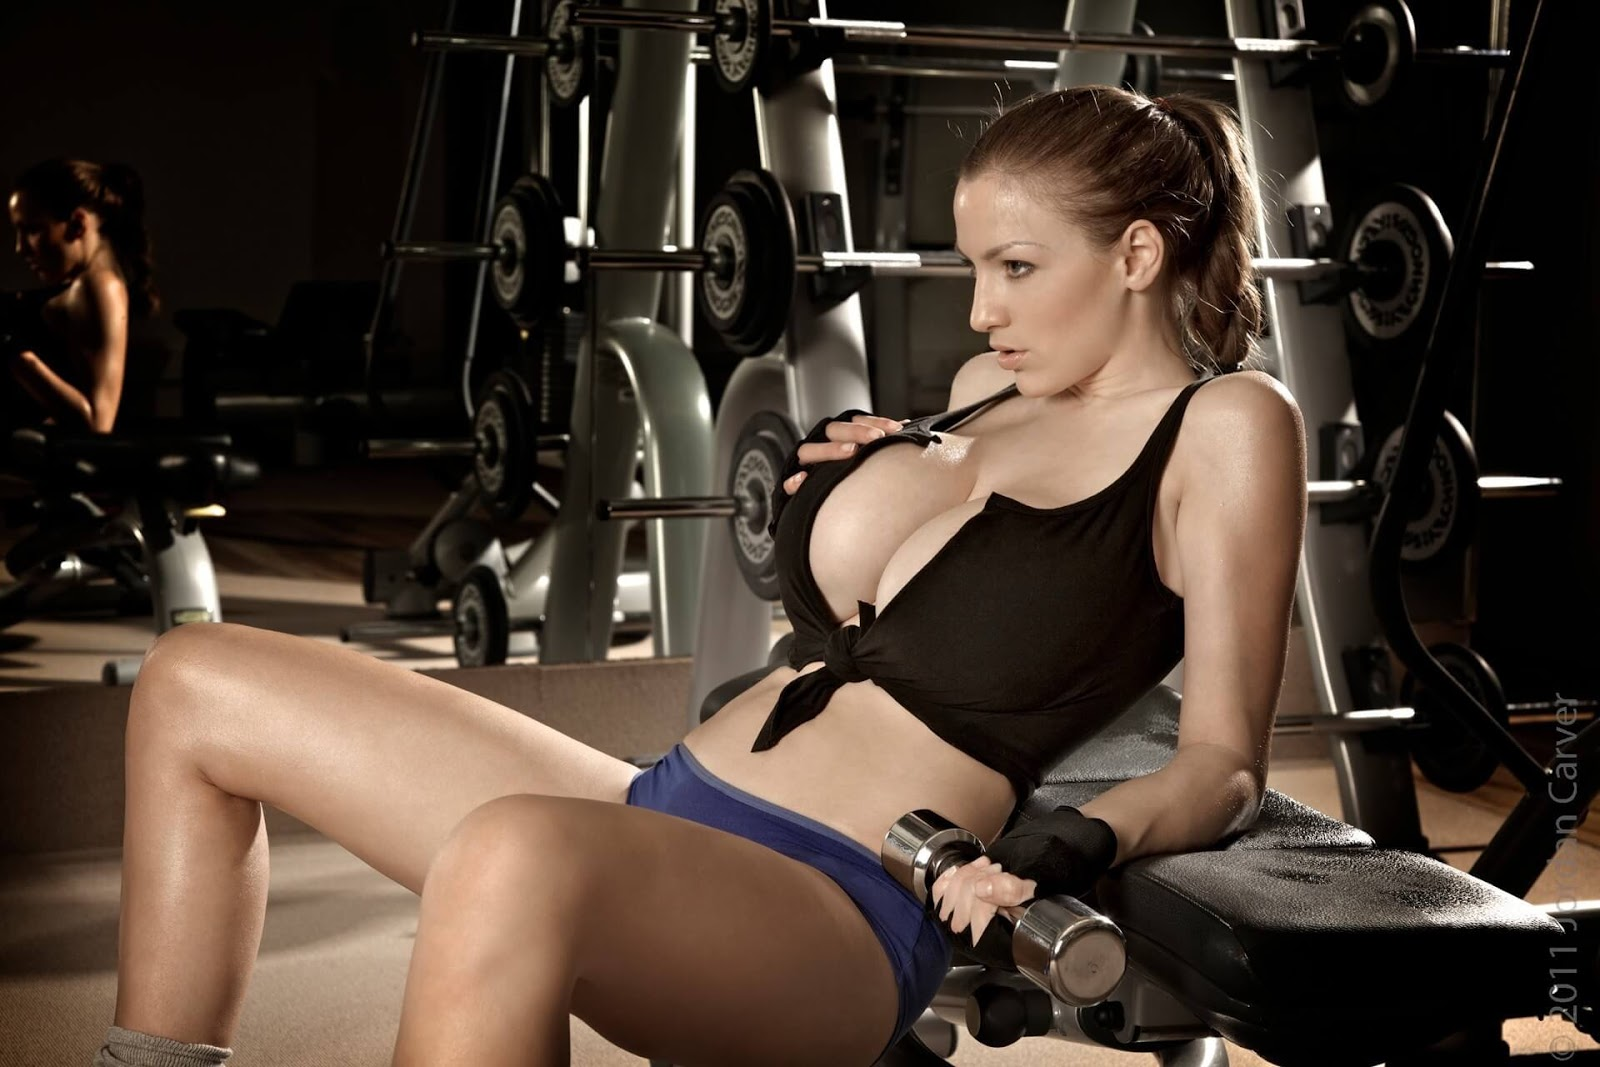 Sexy Workout Babes